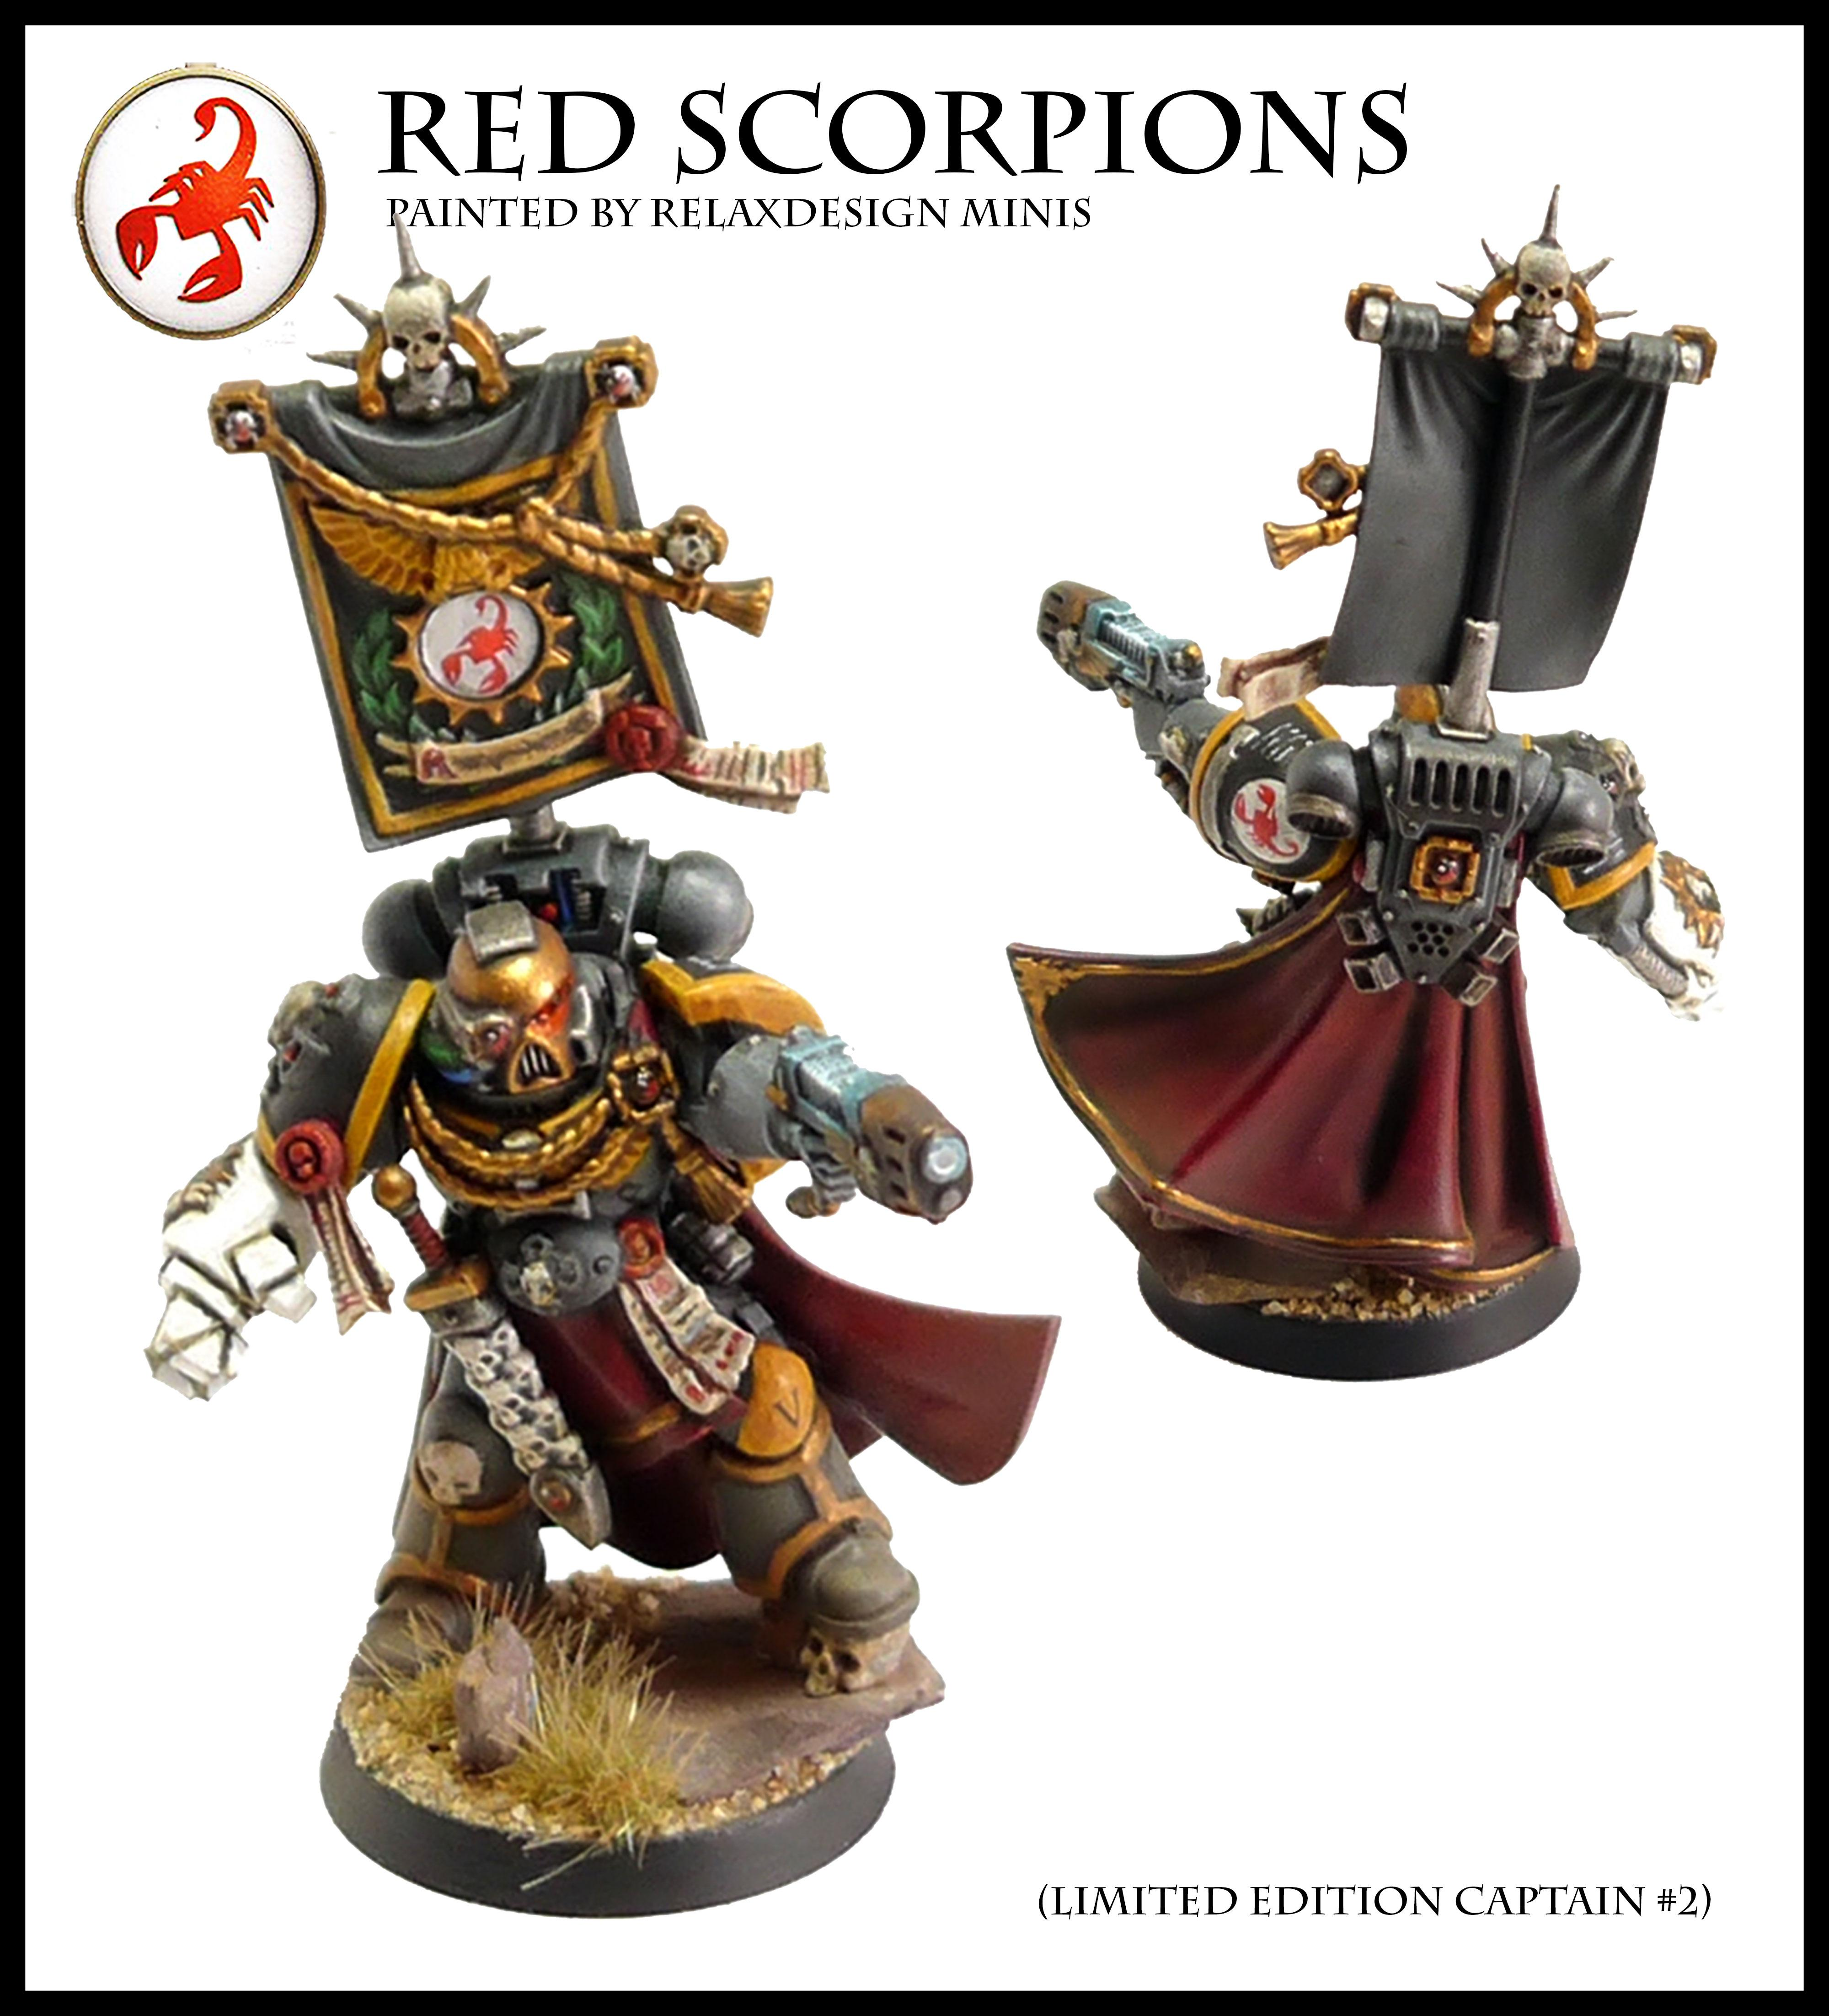 #2, Captain, Commander, Forge World, Games Workshop, Limited Edition, Red Scorpions, Space Marines, Warhammer 40,000, Warhammer Fantasy